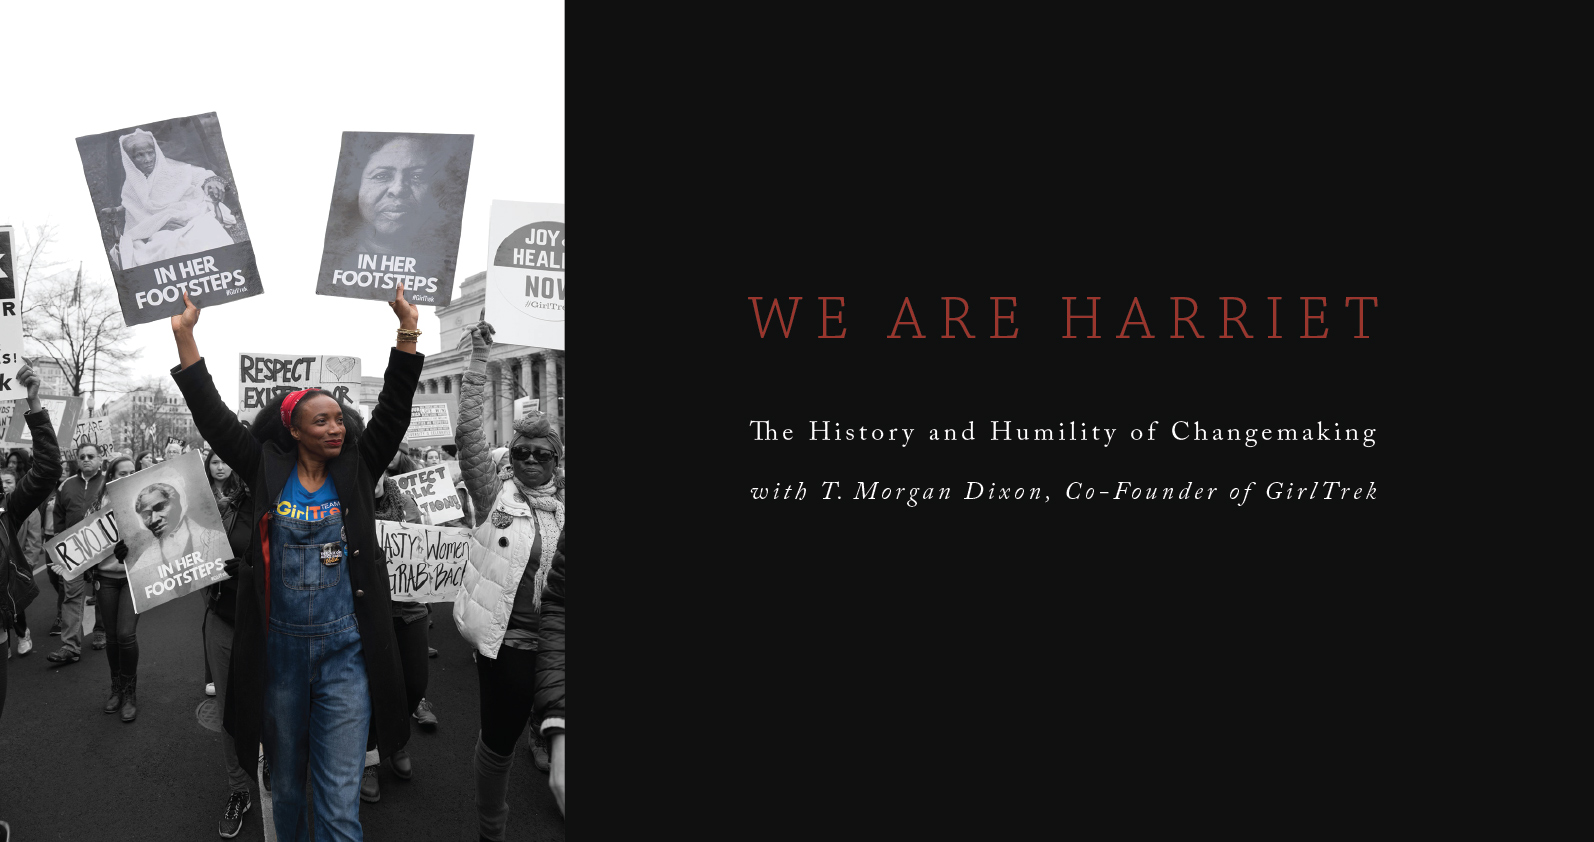 We Are Harriet: The History and Humility of Changemaking with T. Morgan Dixon, Co-Founder of GirlTrek